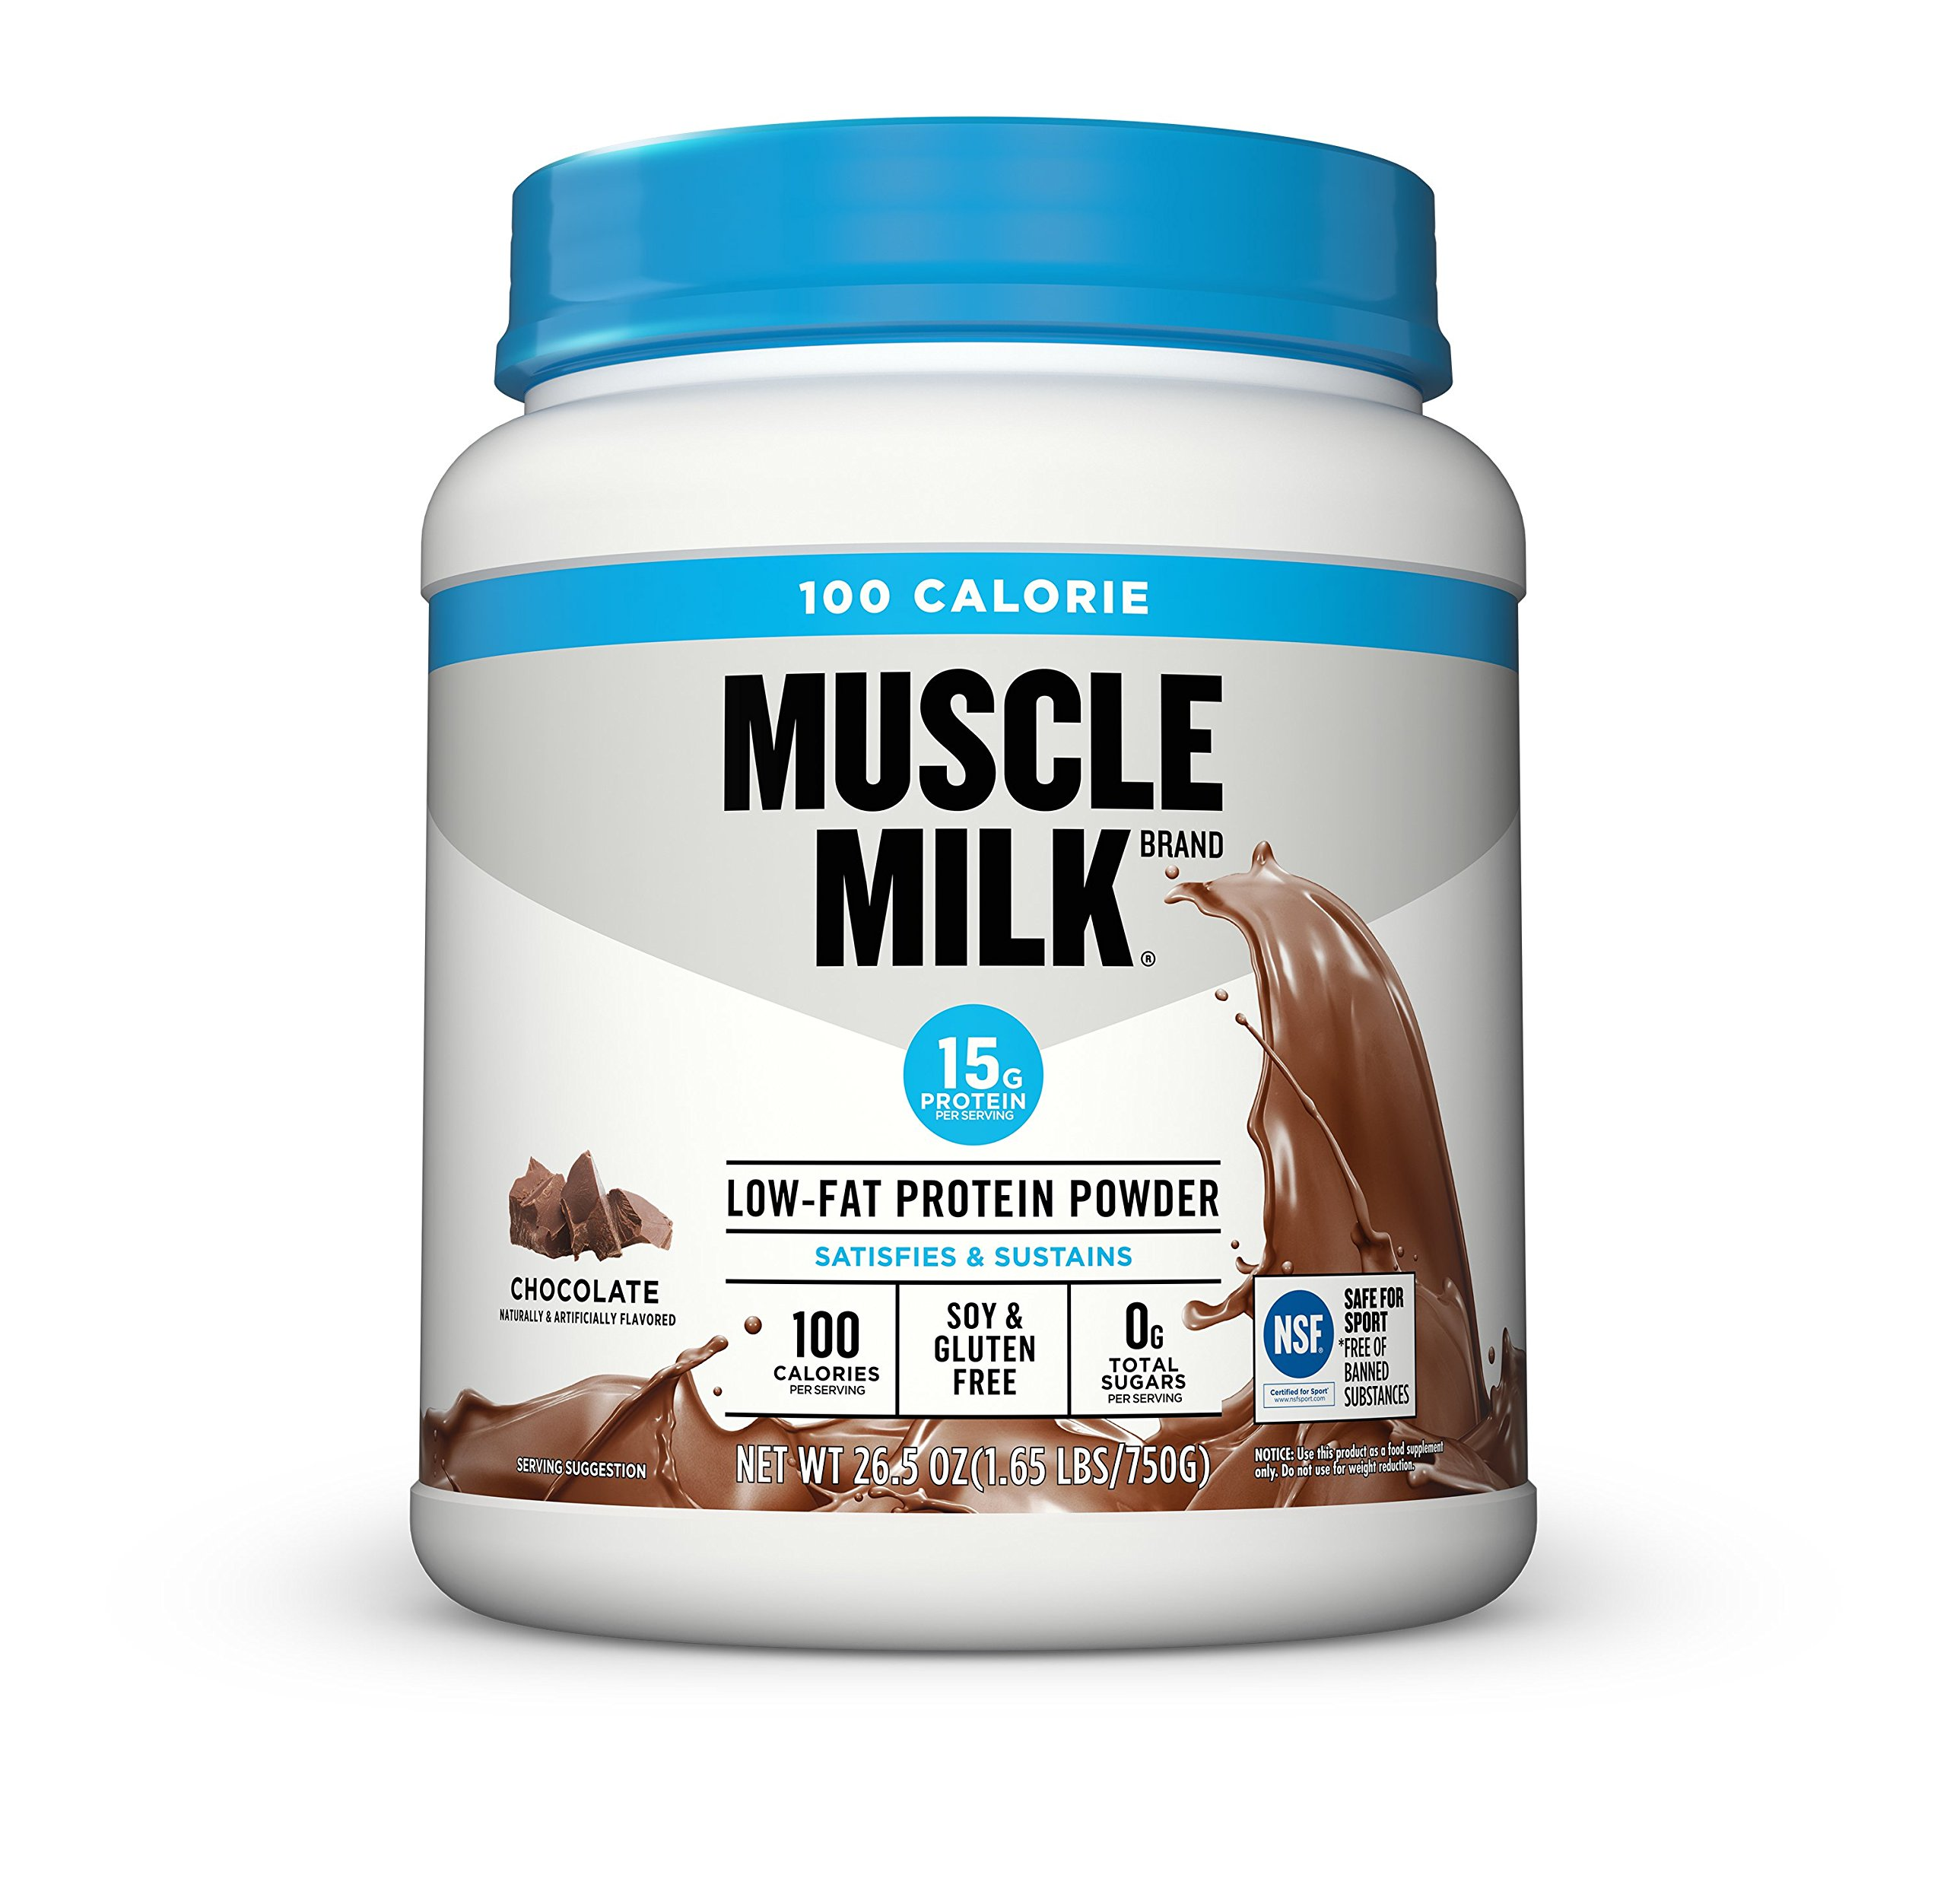 Muscle Milk 100 Calorie Protein Powder, Chocolate, 15g Protein, 1.65 Pound by Muscle Milk